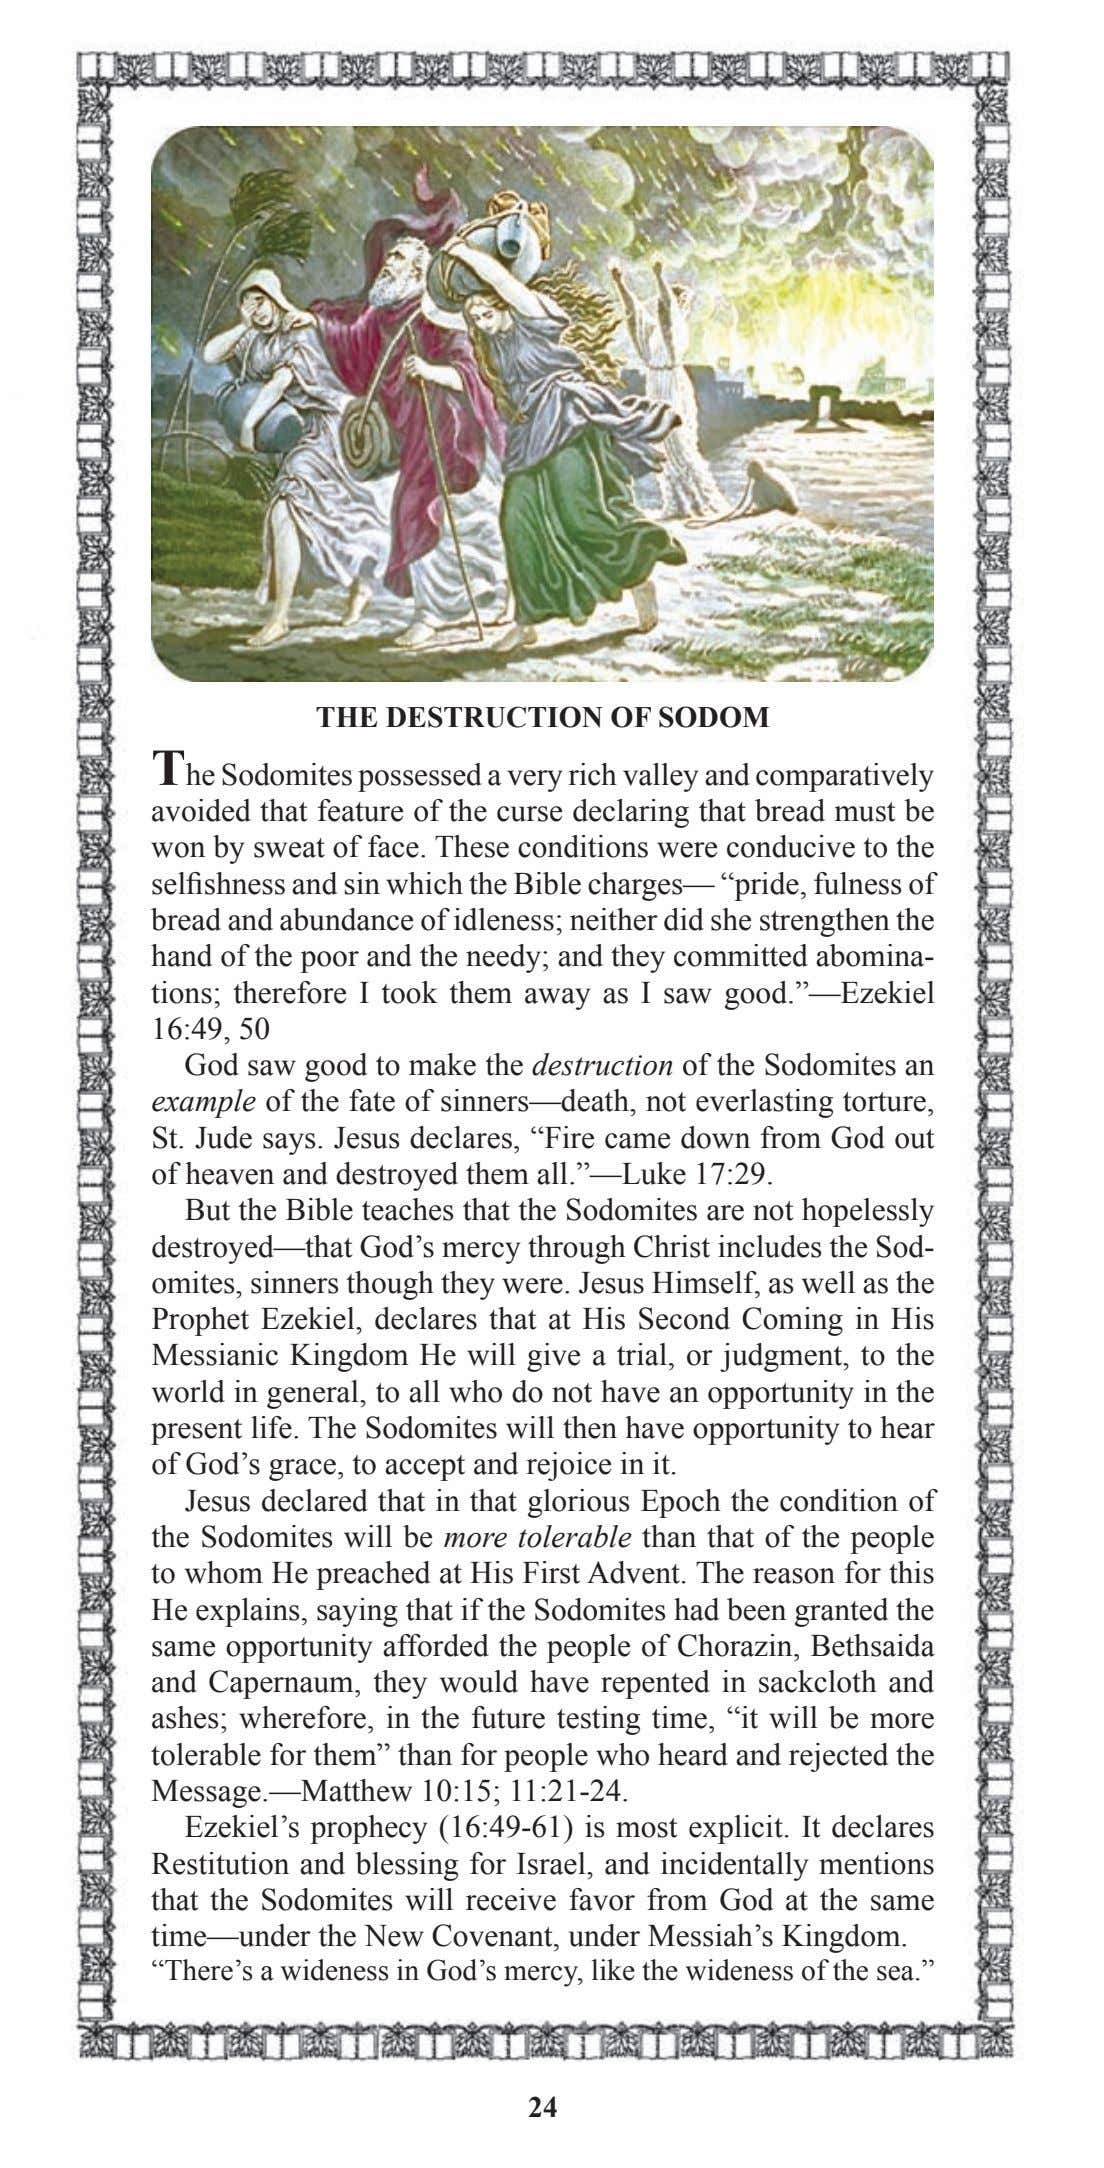 THE DESTRUCTION OF SODOM The Sodomites possessed a very rich valley and comparatively avoided that